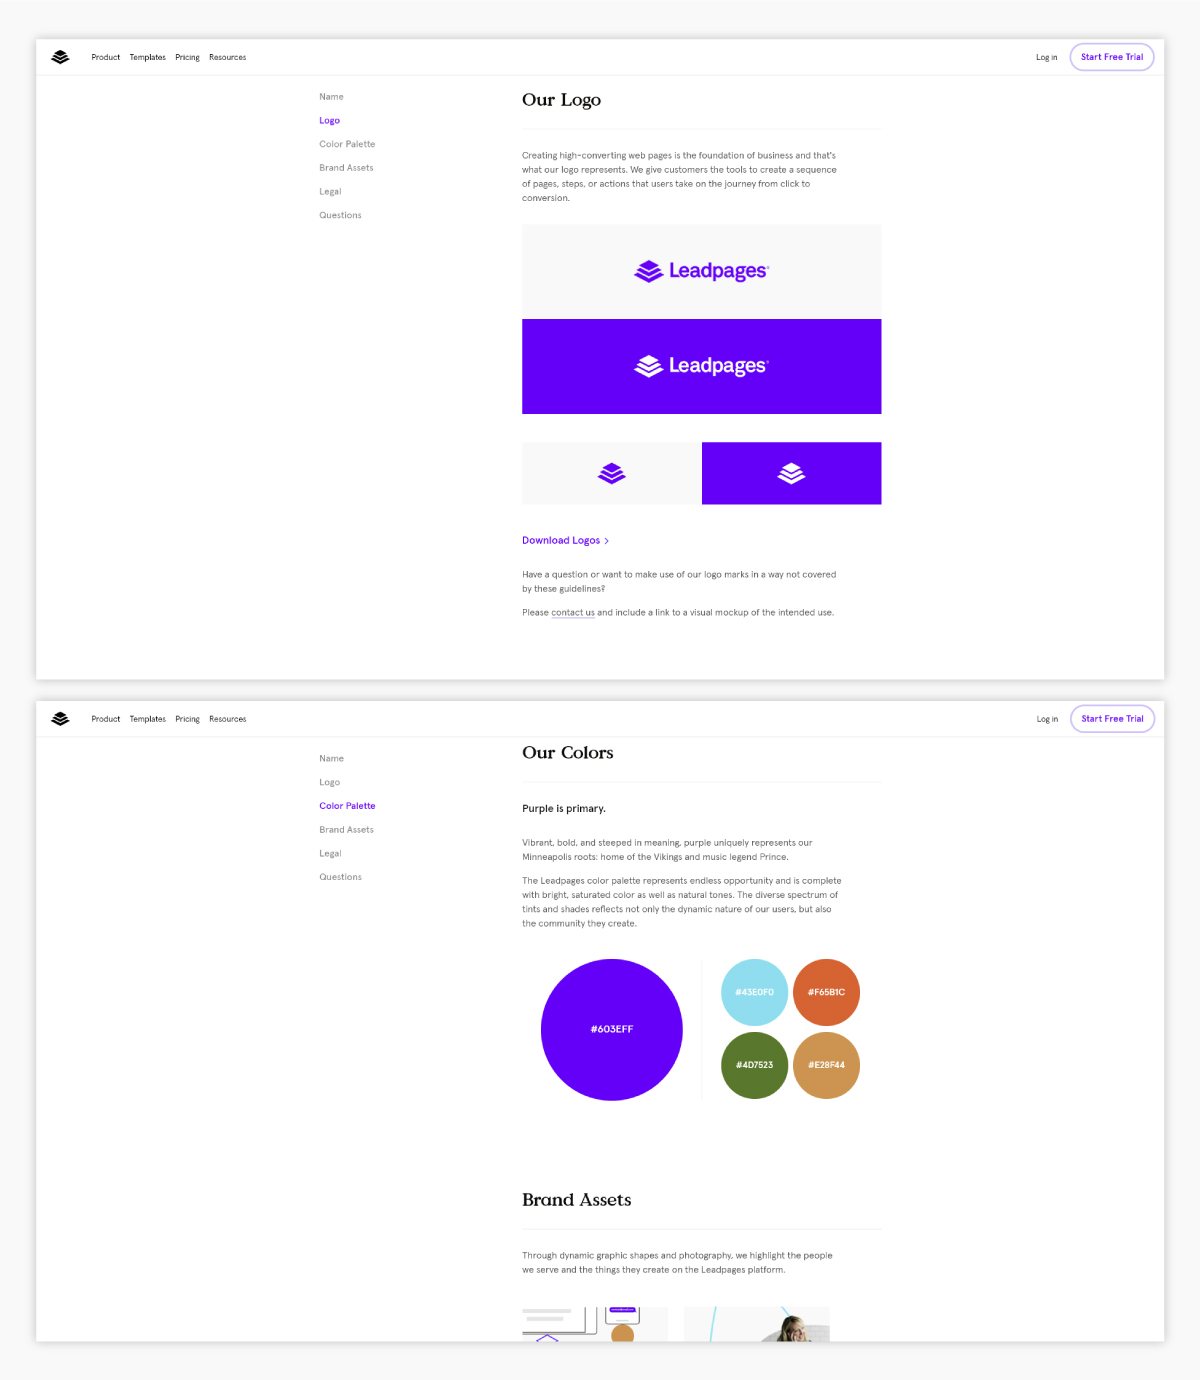 A screenshot of Leadpages's brand guidelines.